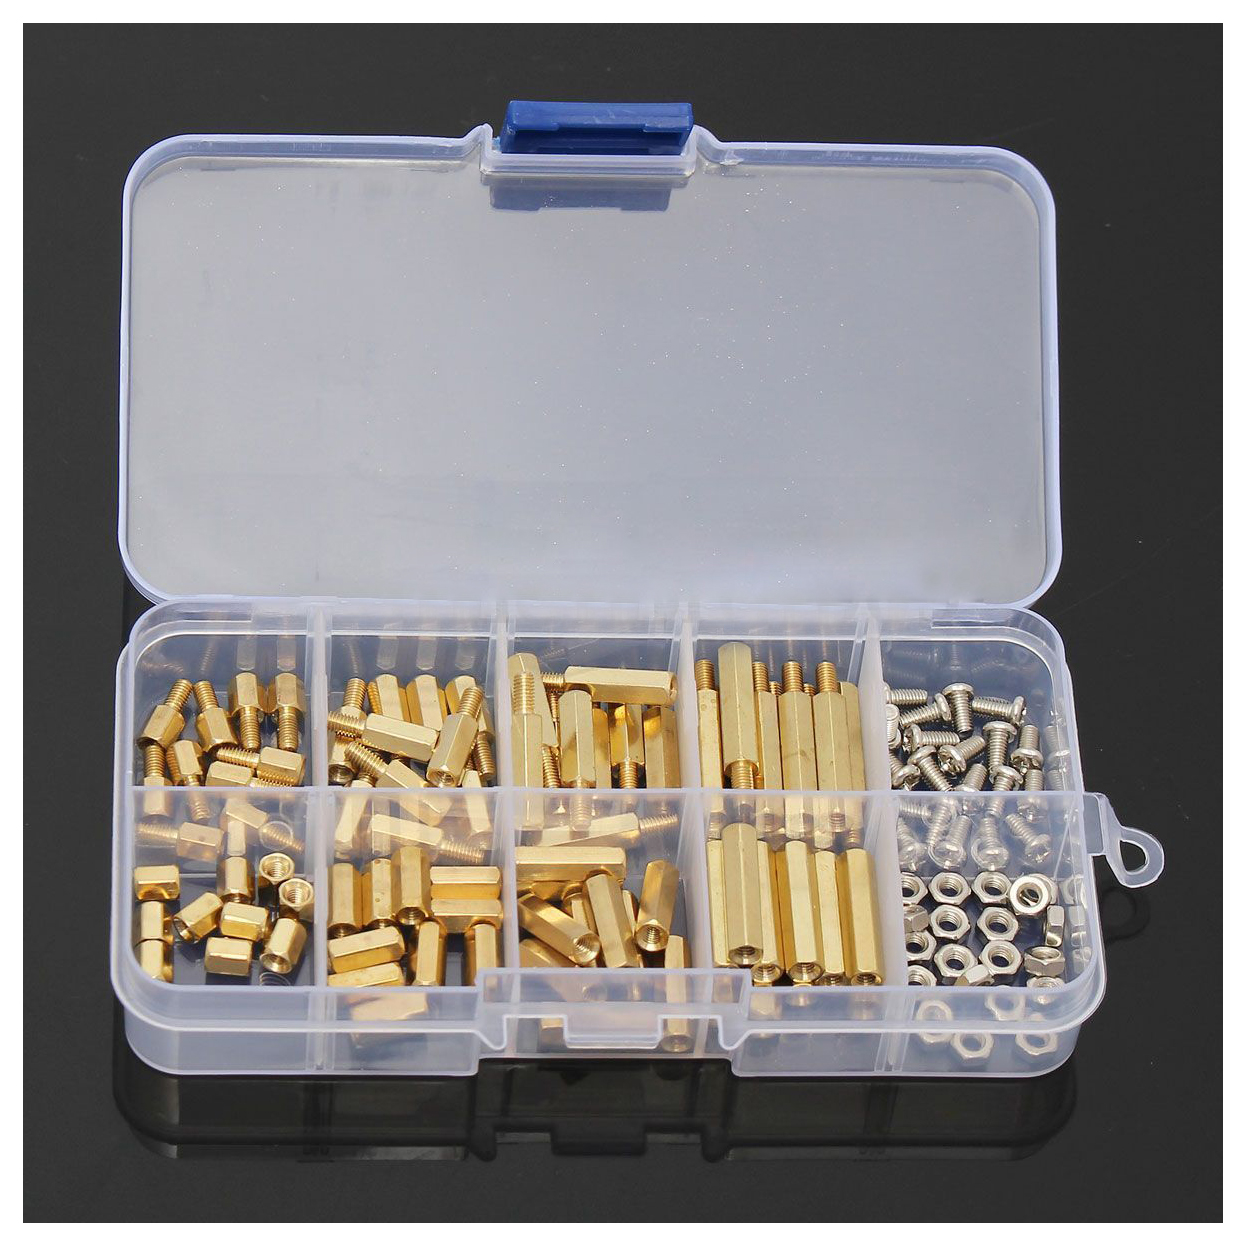 120pcs M3 Male Female Brass Standoff Spacer Pcb Board Hex Screws Nut Copper Silver Pillars Circuit Aeproductgetsubject